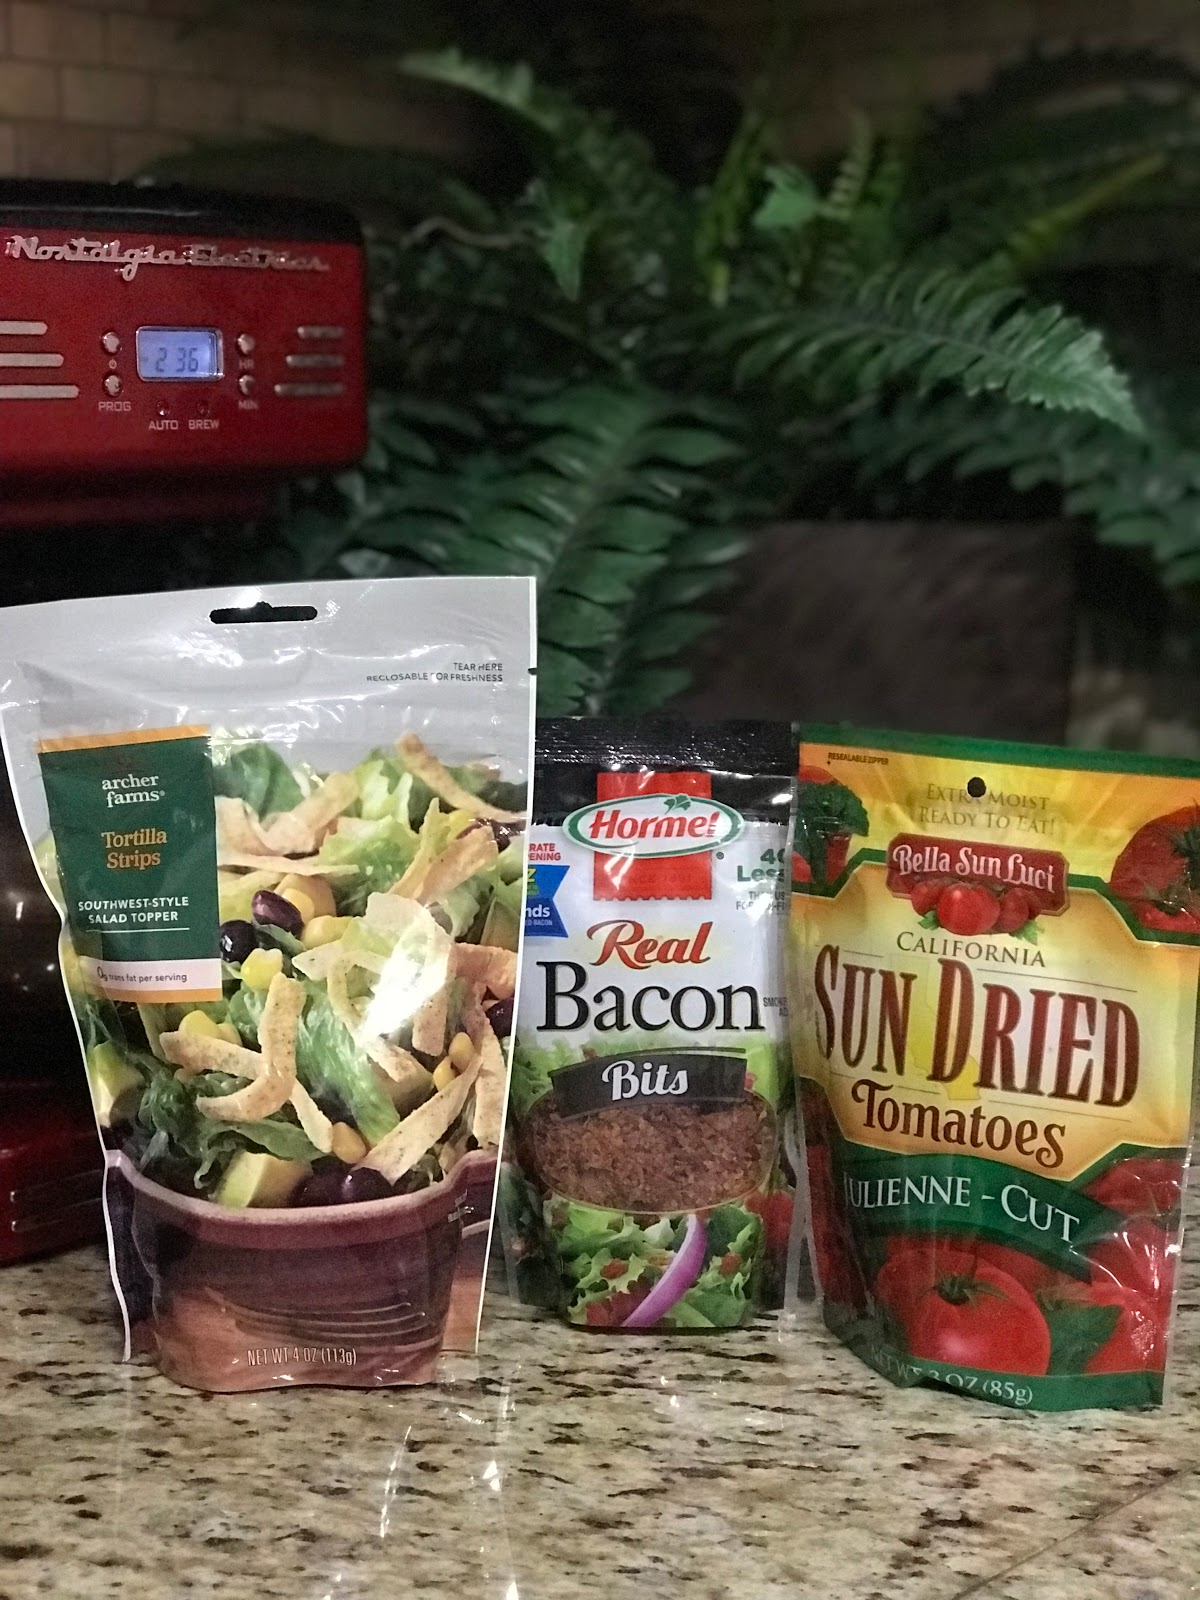 Image : chips, bacon bits sun dried tomatoes items that Tangie Bell will be using her her pretend homemade soup